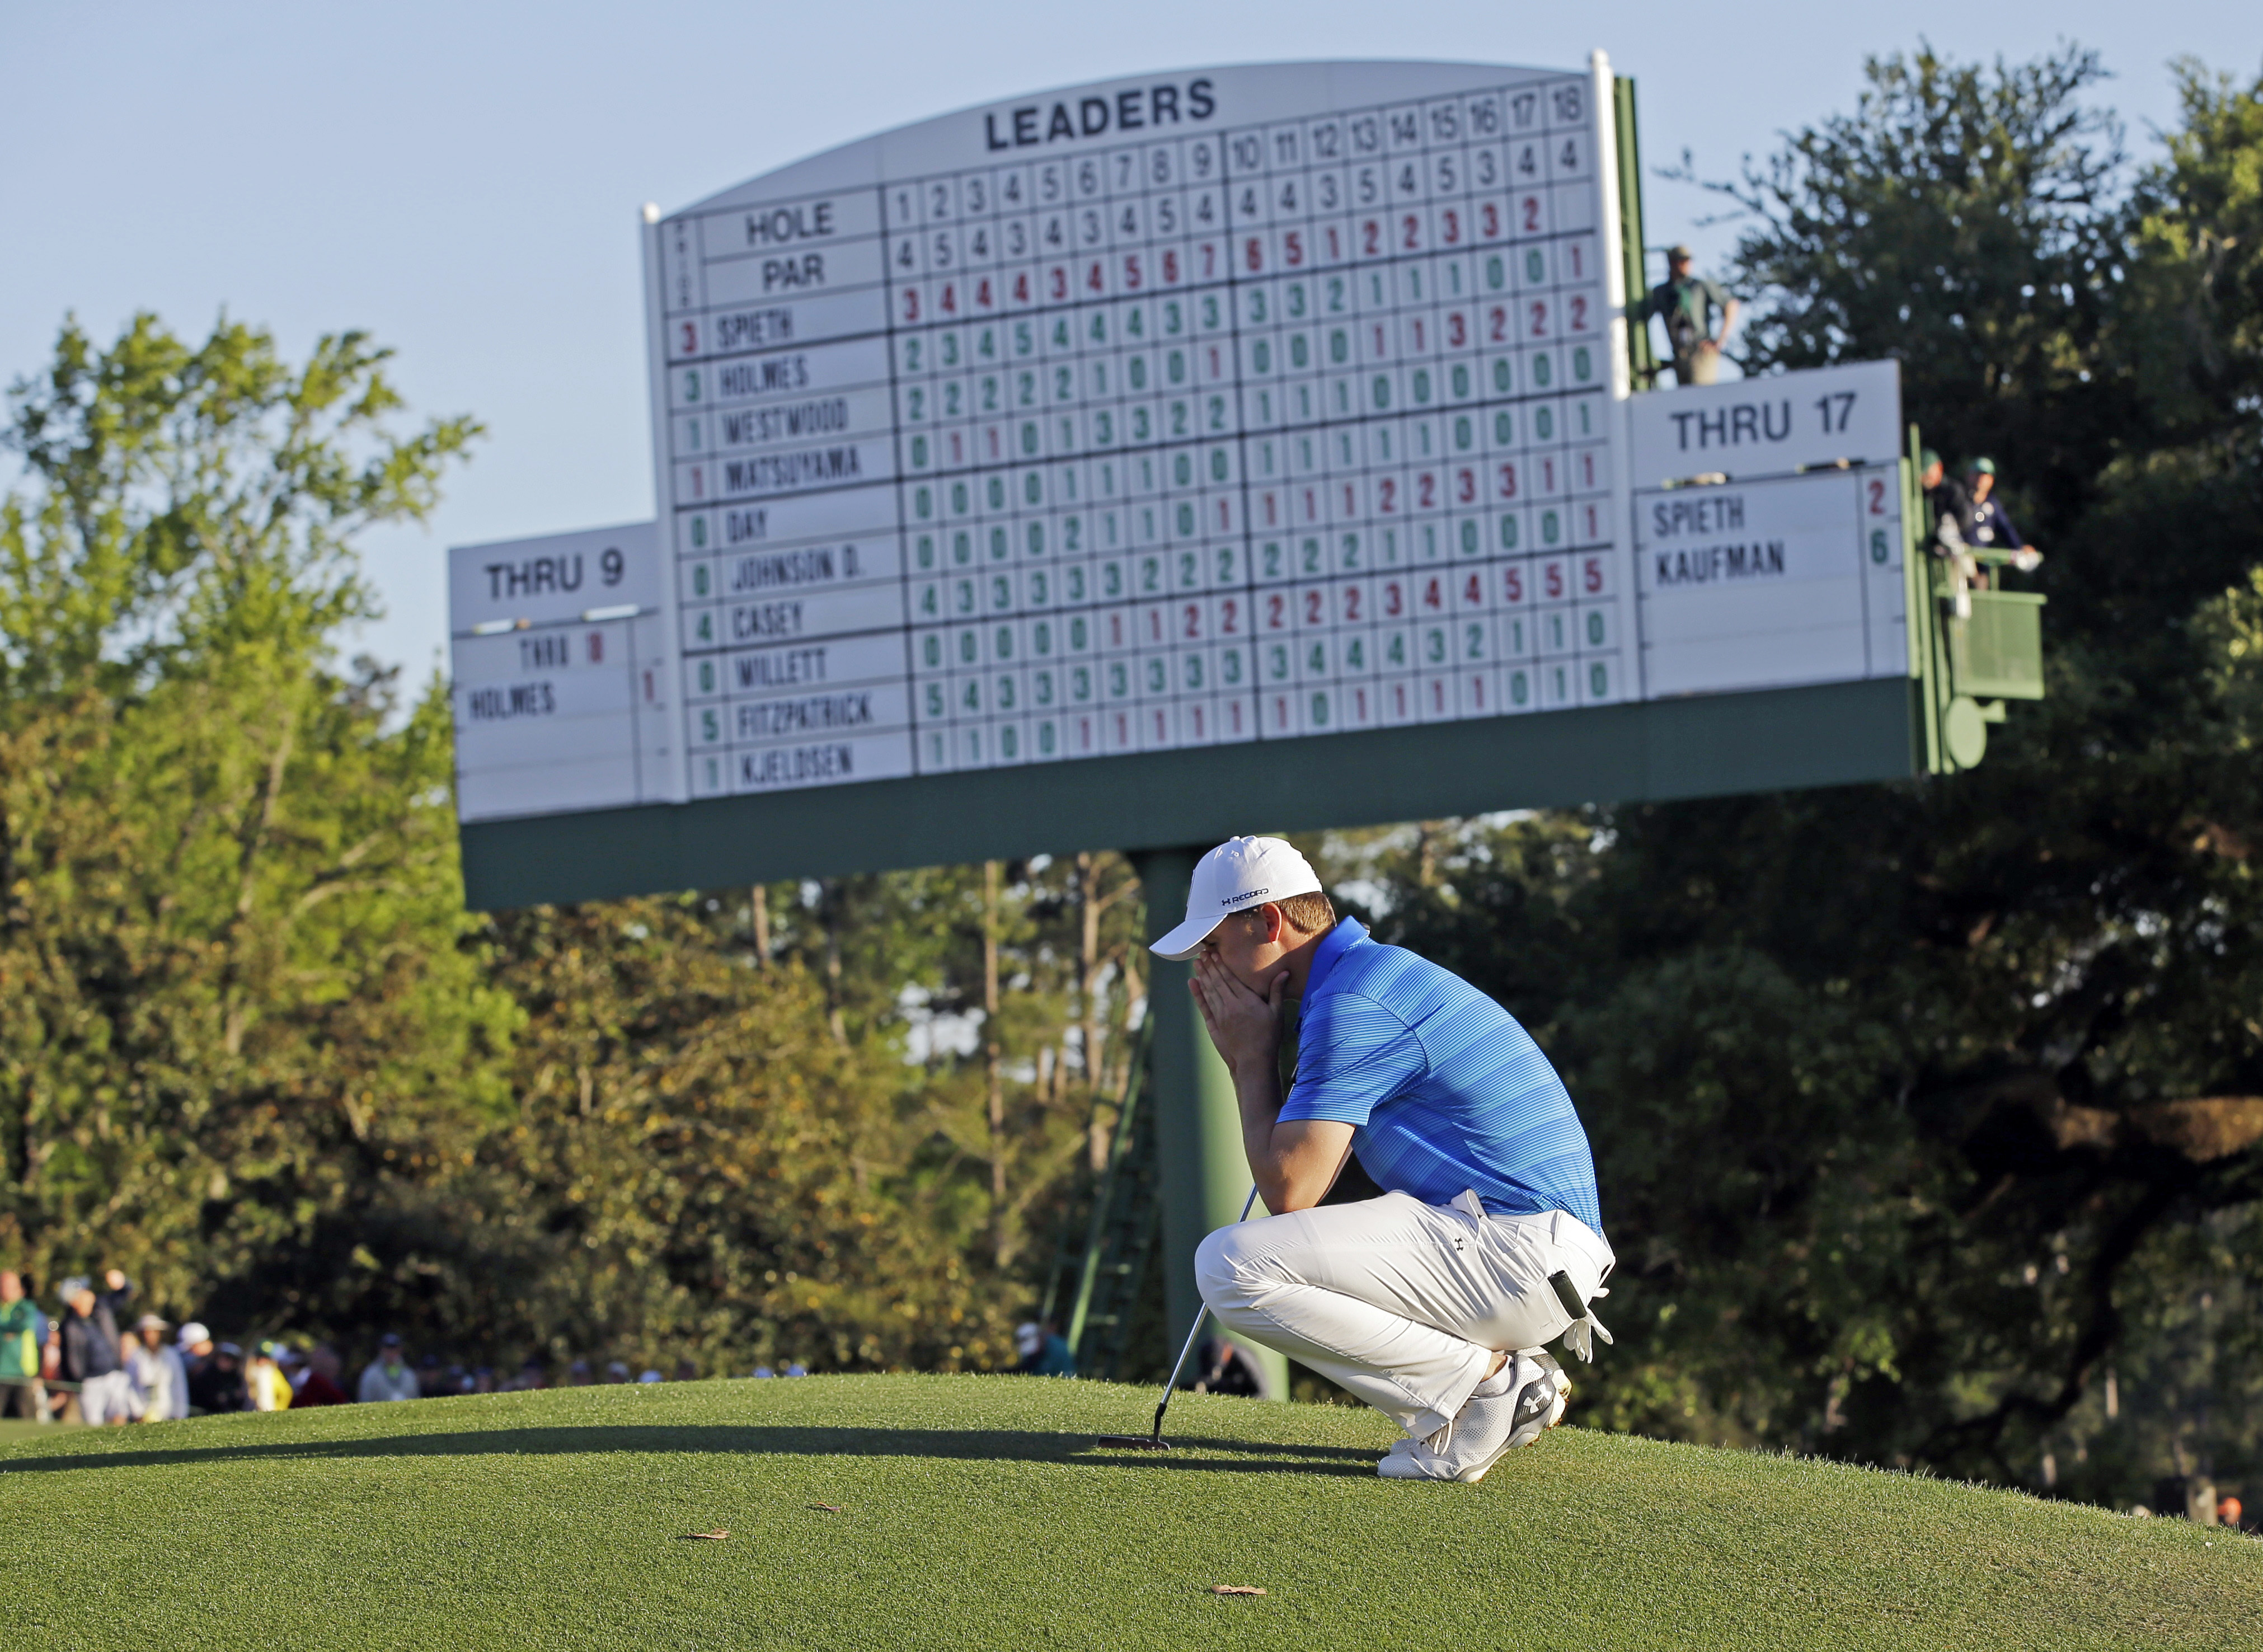 FILE - In this April 10, 2016, file photo, Jordan Spieth waits to putt at the 18th green during the final round of the Masters golf tournament in Augusta, Ga. Two weeks before the Masters begins, Spieth is looking forward to it being over. Spieth was on t